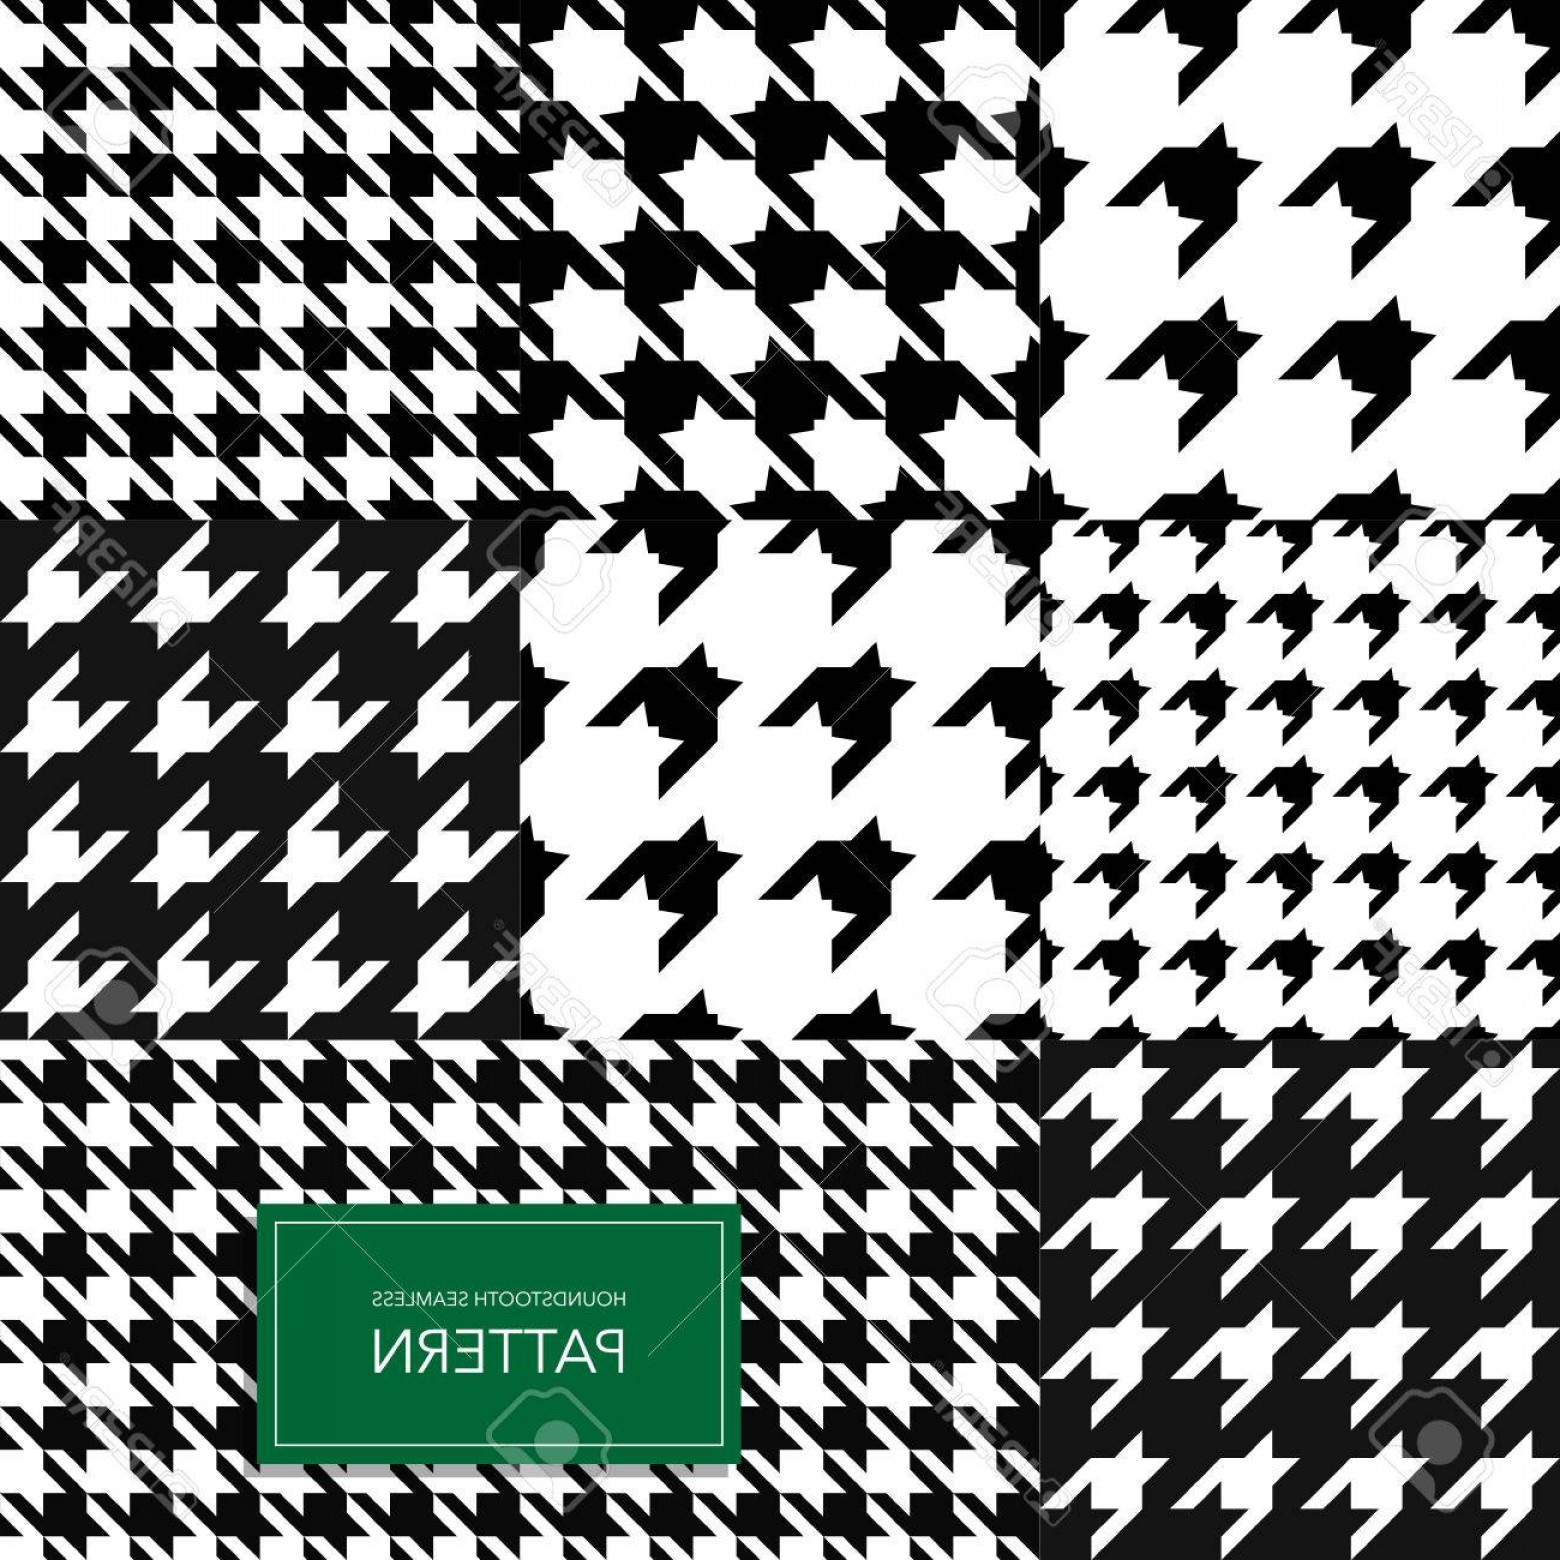 Houndstooth Vector: Photostock Vector Seamless Black And White Houndstooth Vector Background Retro Geometric Pattern For Clothing Fashion